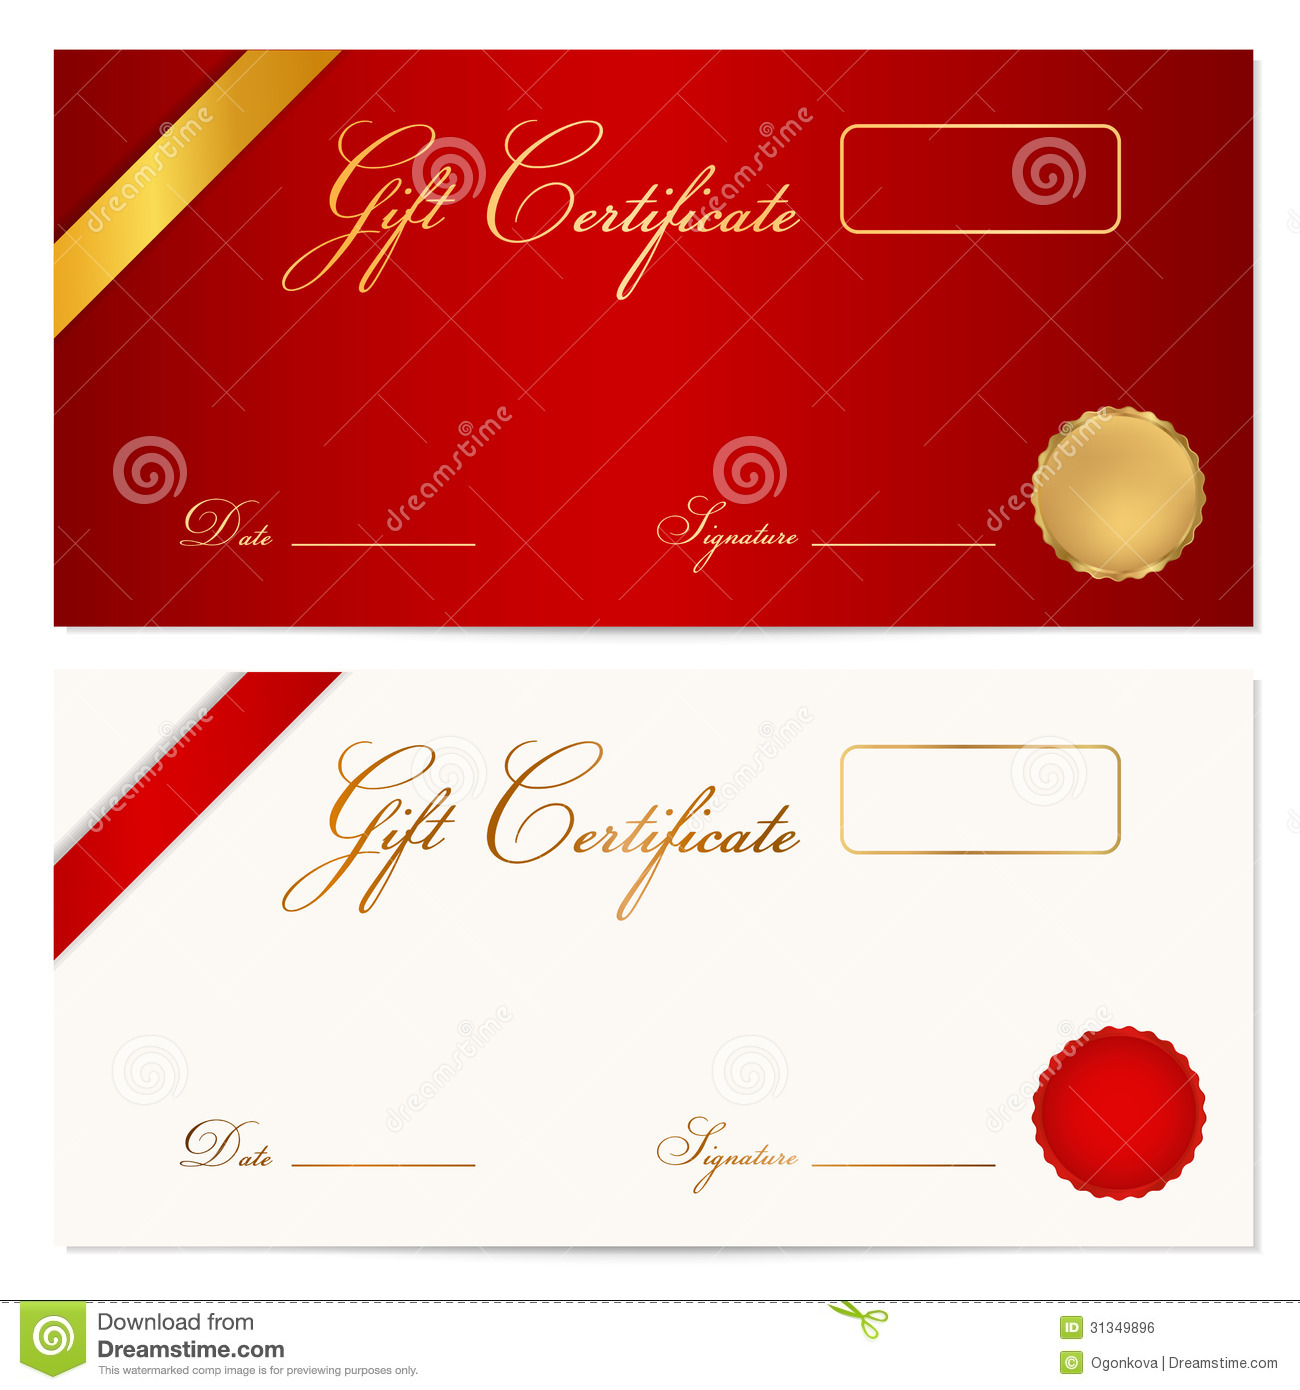 Gift Certificate (Voucher) Template. Wax Seal With Free Voucher Design Template